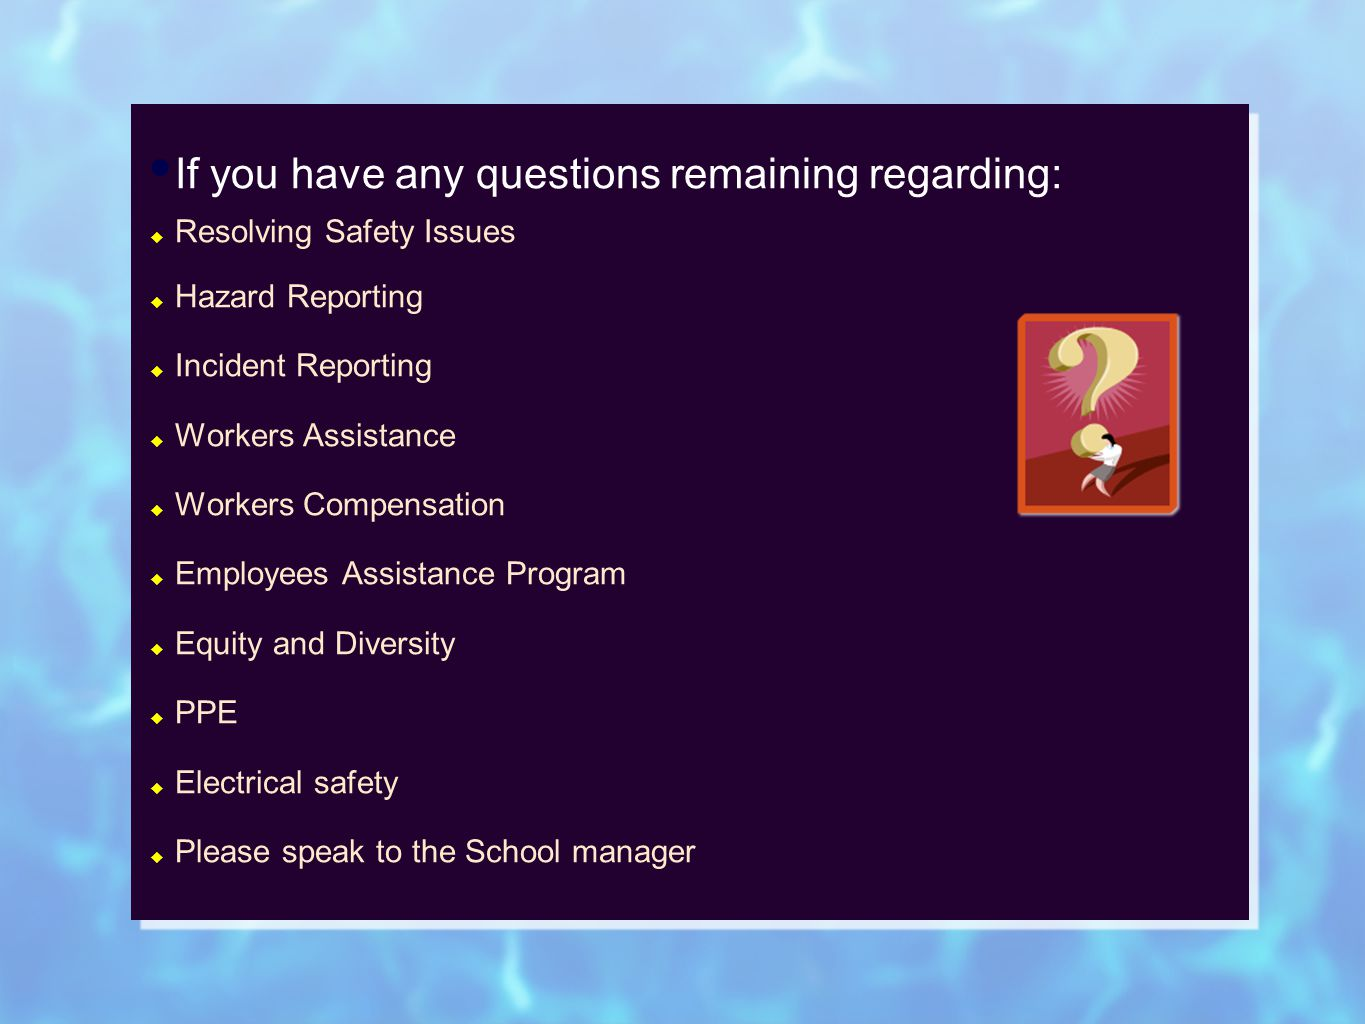 If you have any questions remaining regarding:  Resolving Safety Issues  Hazard Reporting  Incident Reporting  Workers Assistance  Workers Compensation  Employees Assistance Program  Equity and Diversity  PPE  Electrical safety  Please speak to the School manager If you have any questions remaining regarding:  Resolving Safety Issues  Hazard Reporting  Incident Reporting  Workers Assistance  Workers Compensation  Employees Assistance Program  Equity and Diversity  PPE  Electrical safety  Please speak to the School manager